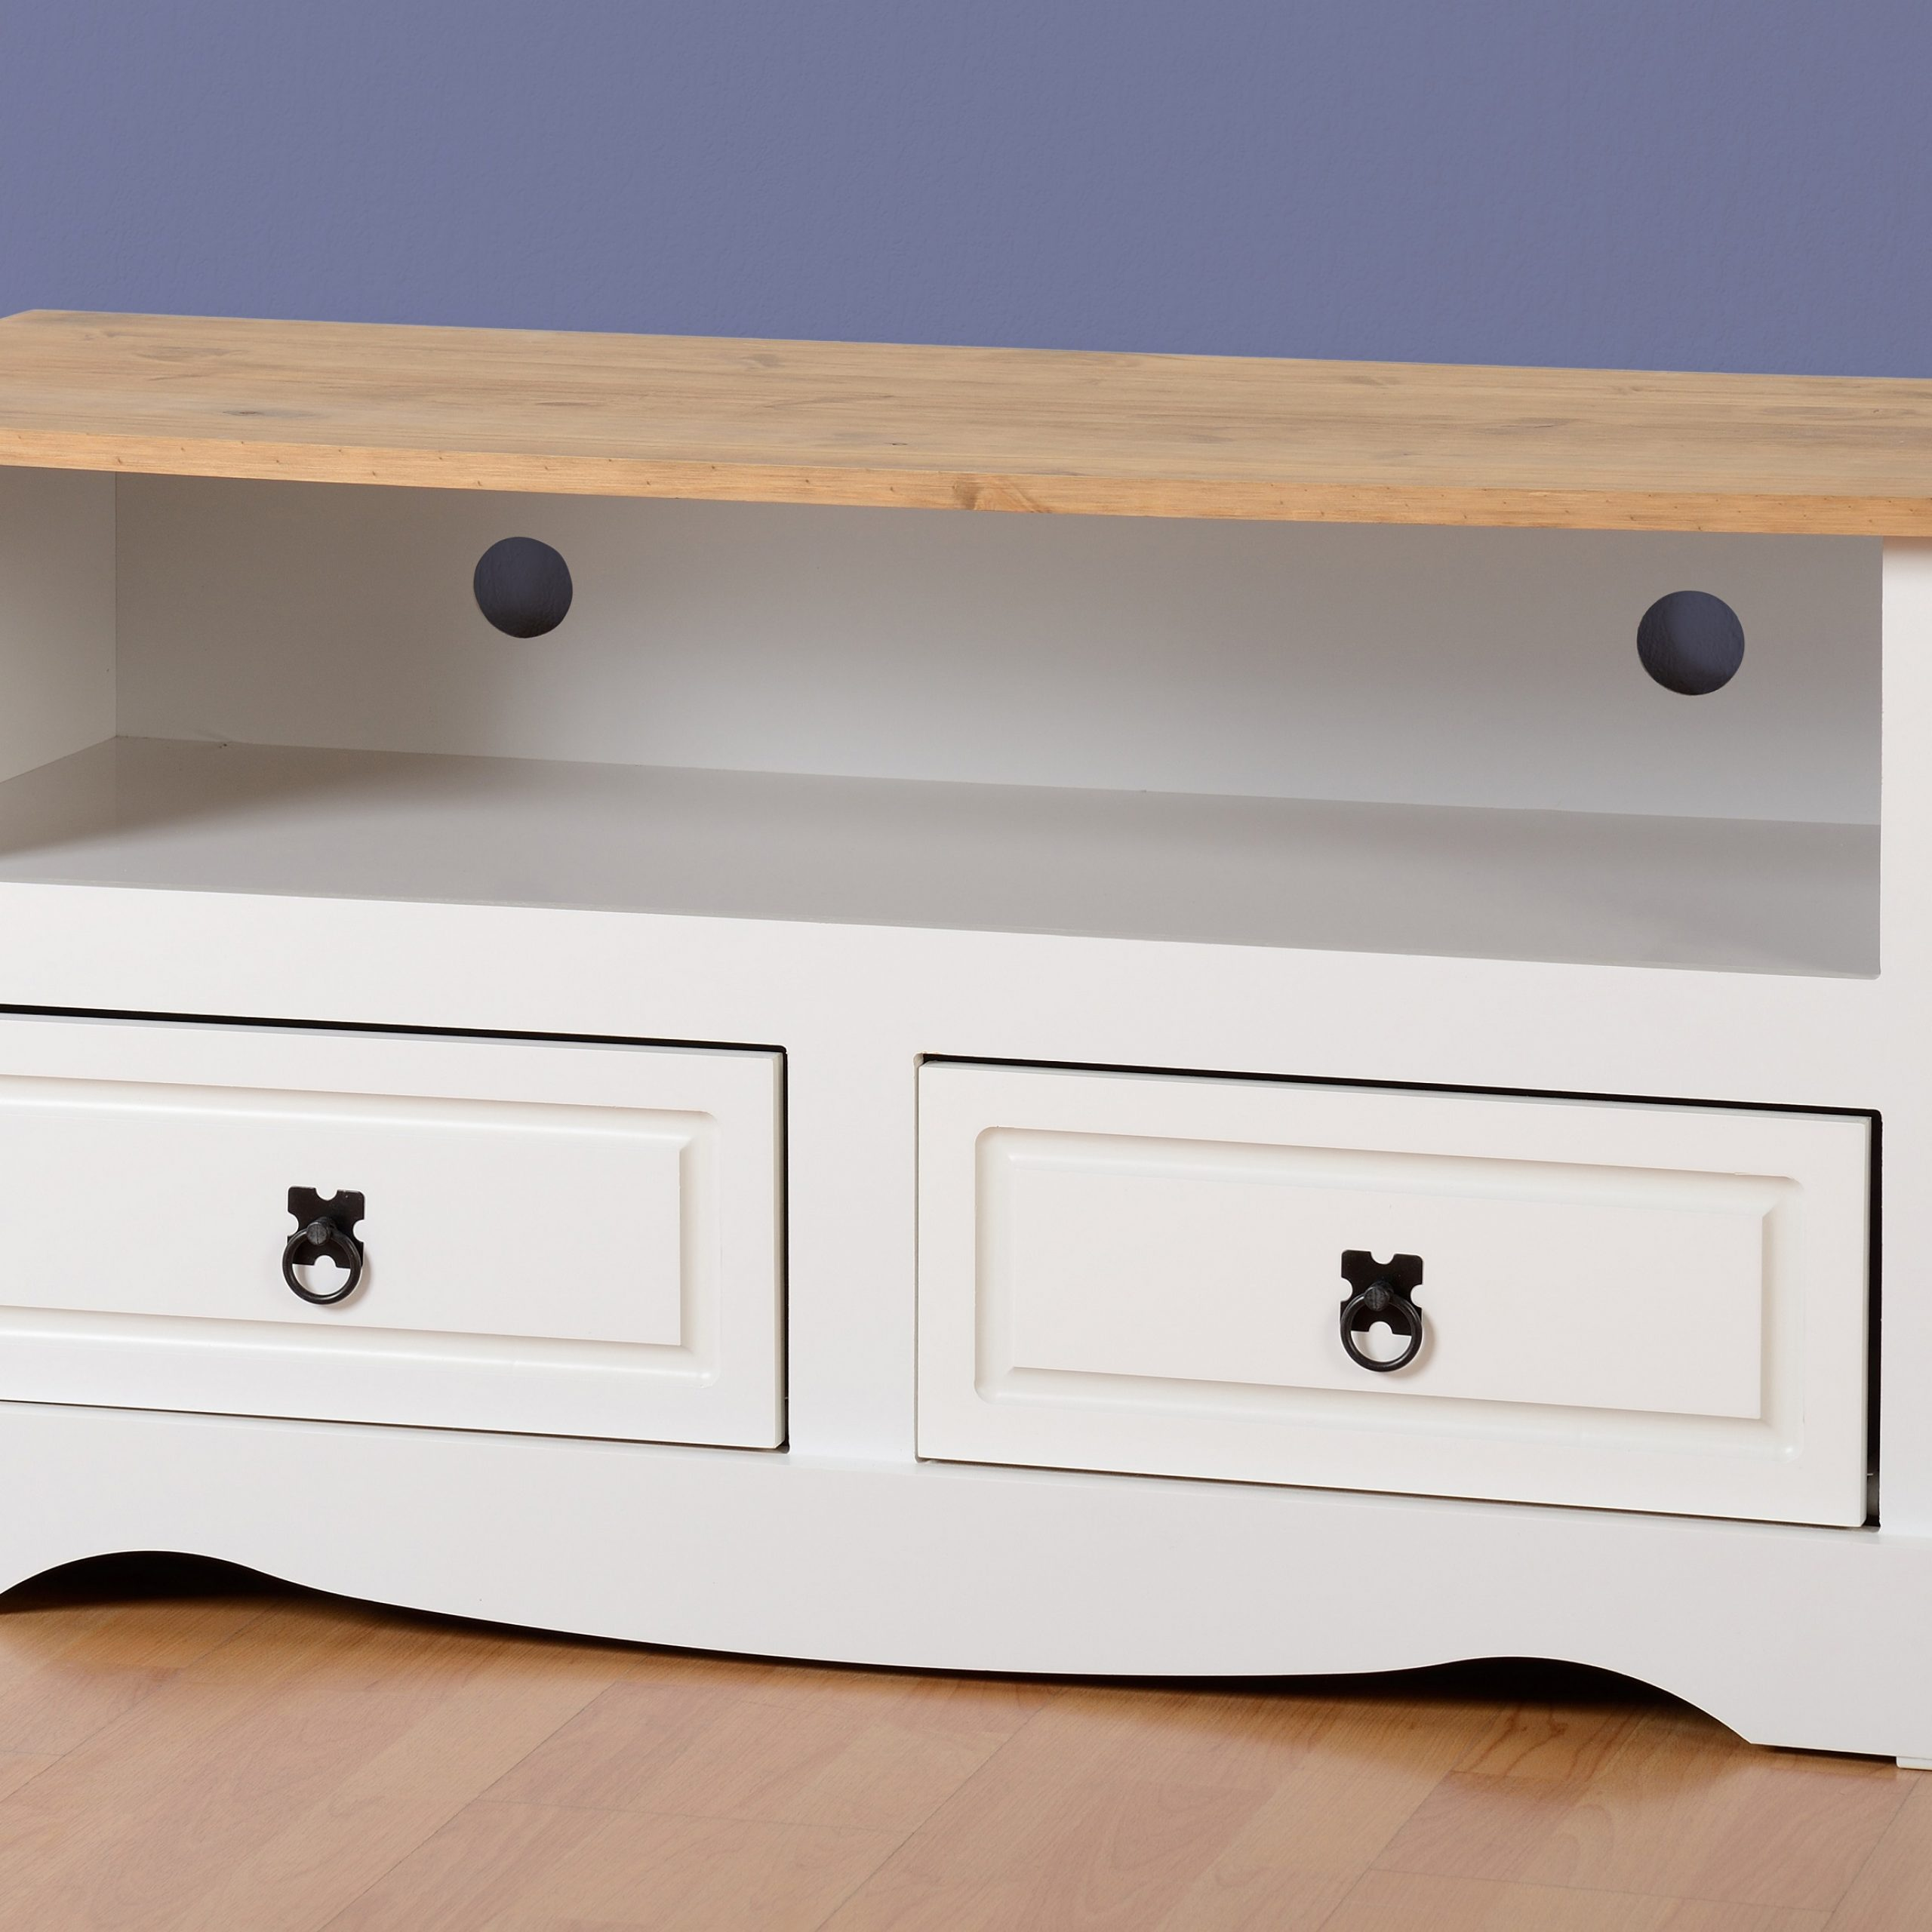 Fashionable Corona Tv Stand 2 Drawer White & Distressed Waxed Pine Inside Corona Tv Stands (View 7 of 10)